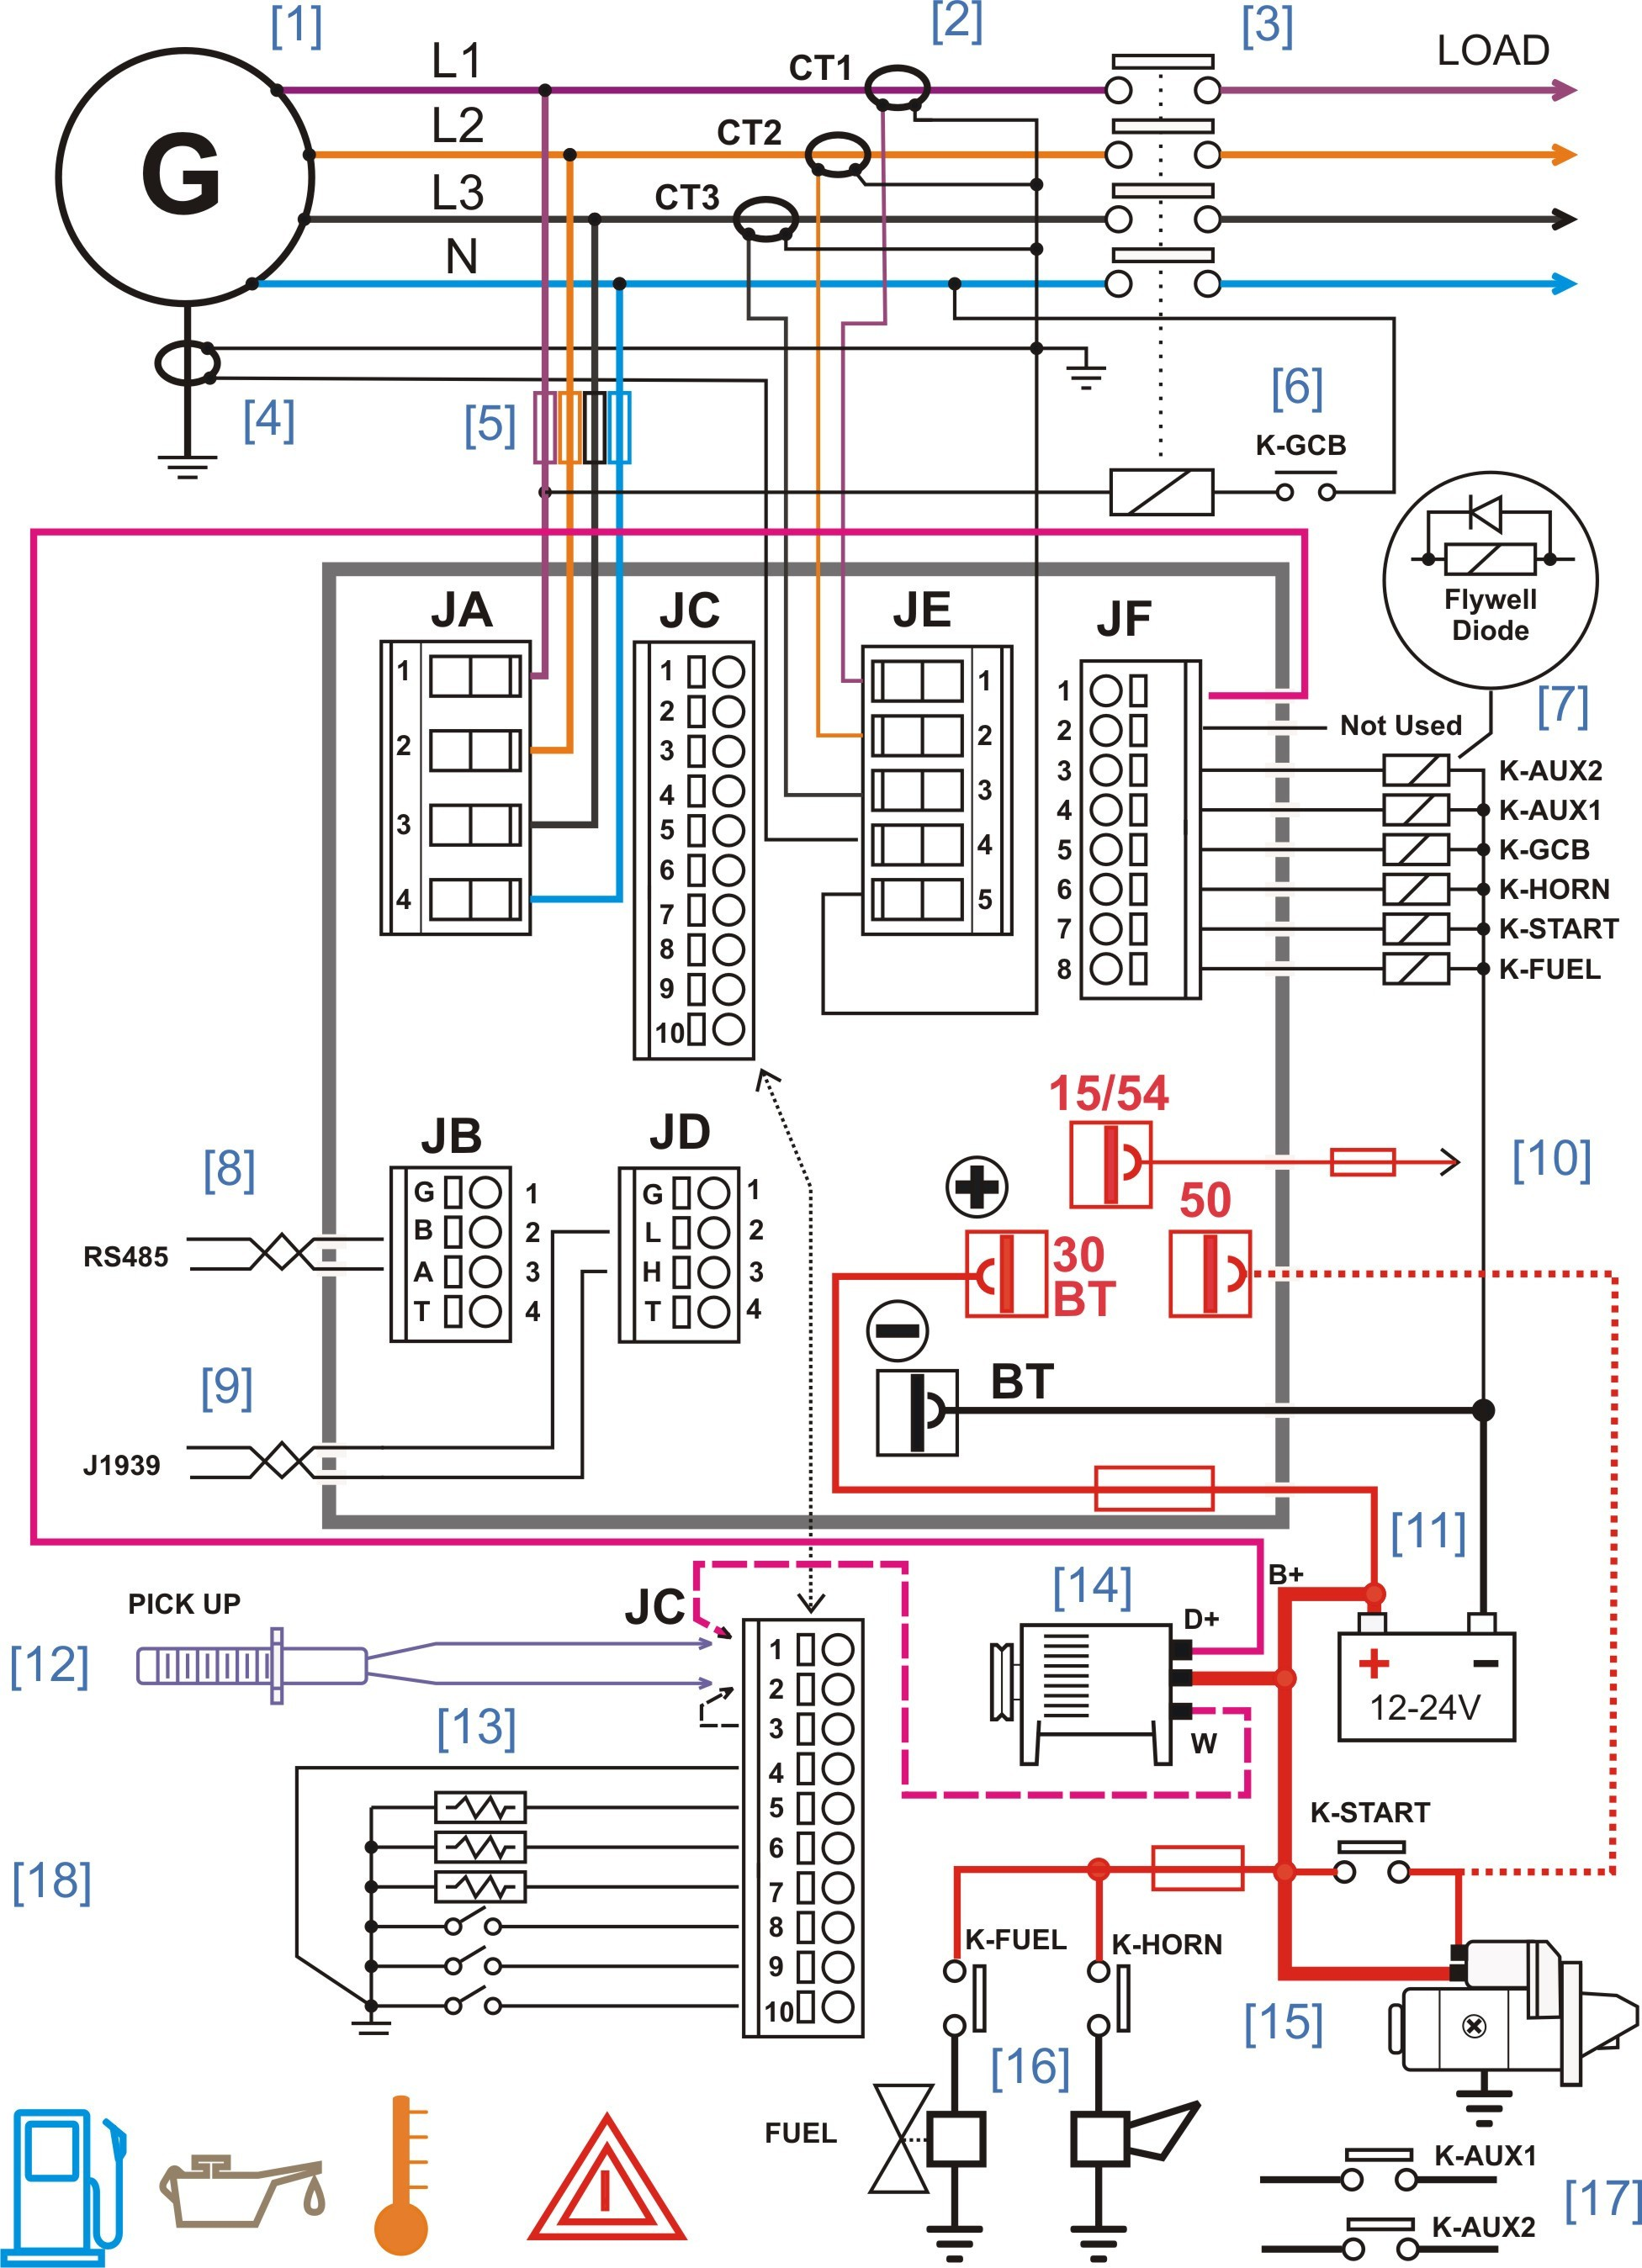 Trend Kenwood Kdc 210U Wiring Diagram 92 For Electric Brake Controller With